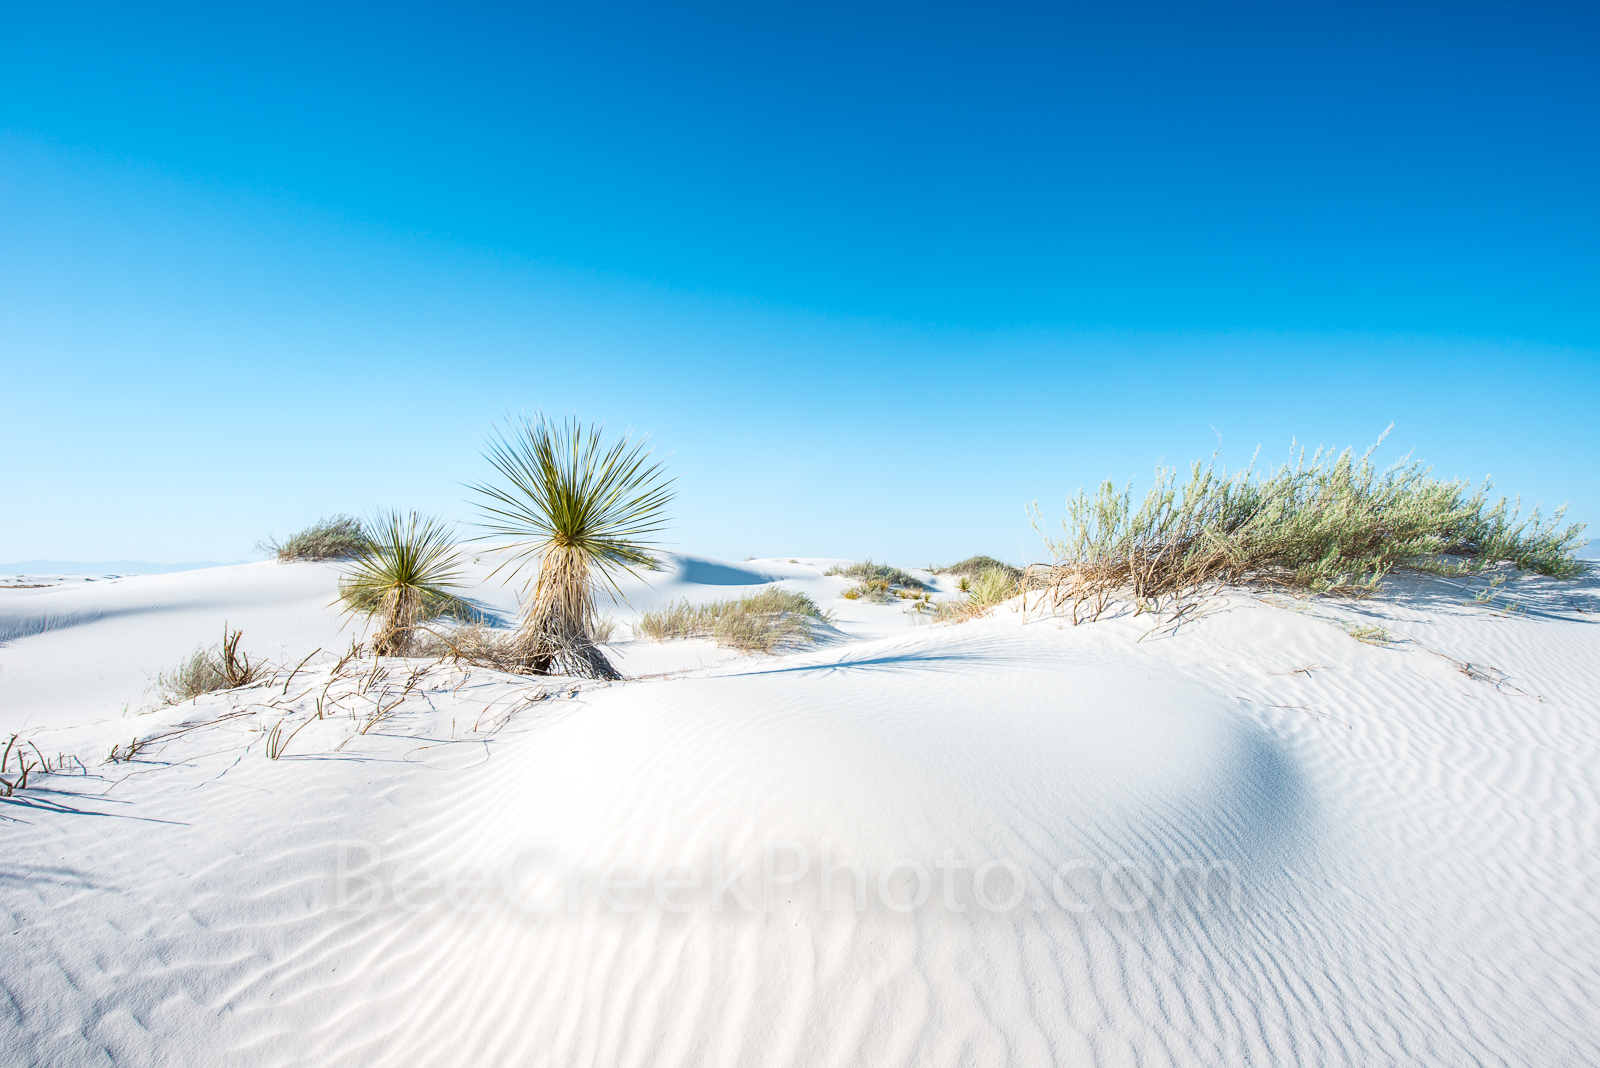 Desert Dunes2 -Desert Dunes Landscape from White Sands New Mexico with yuccas growing through the gypsum sand. The...